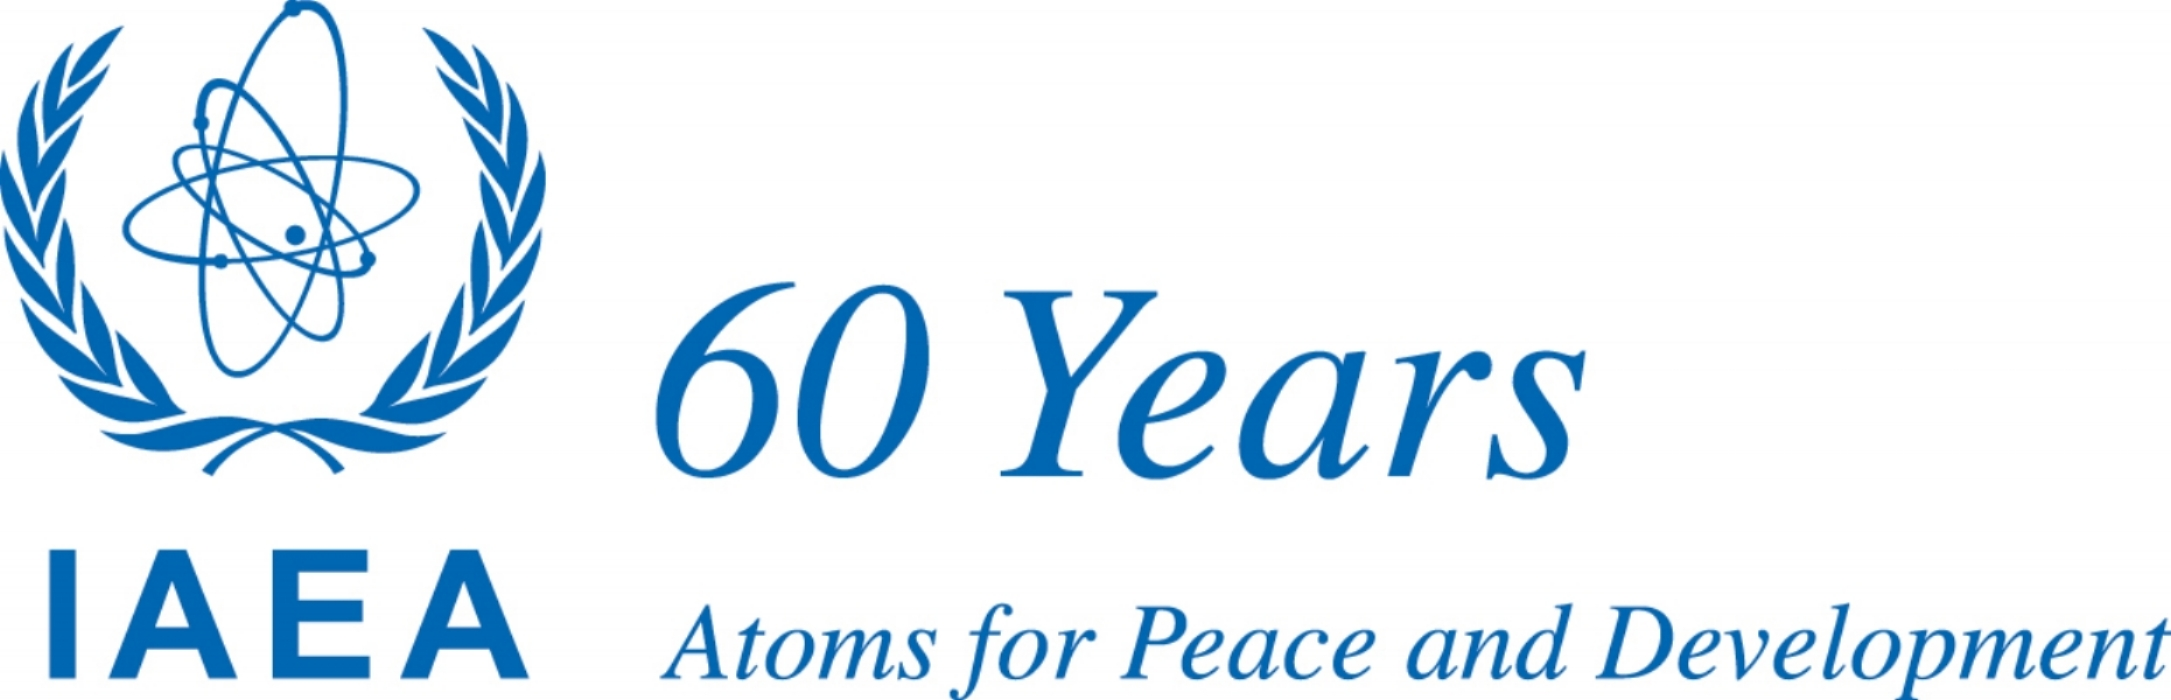 IAEA_60_Years_LOGO_blue.jpg